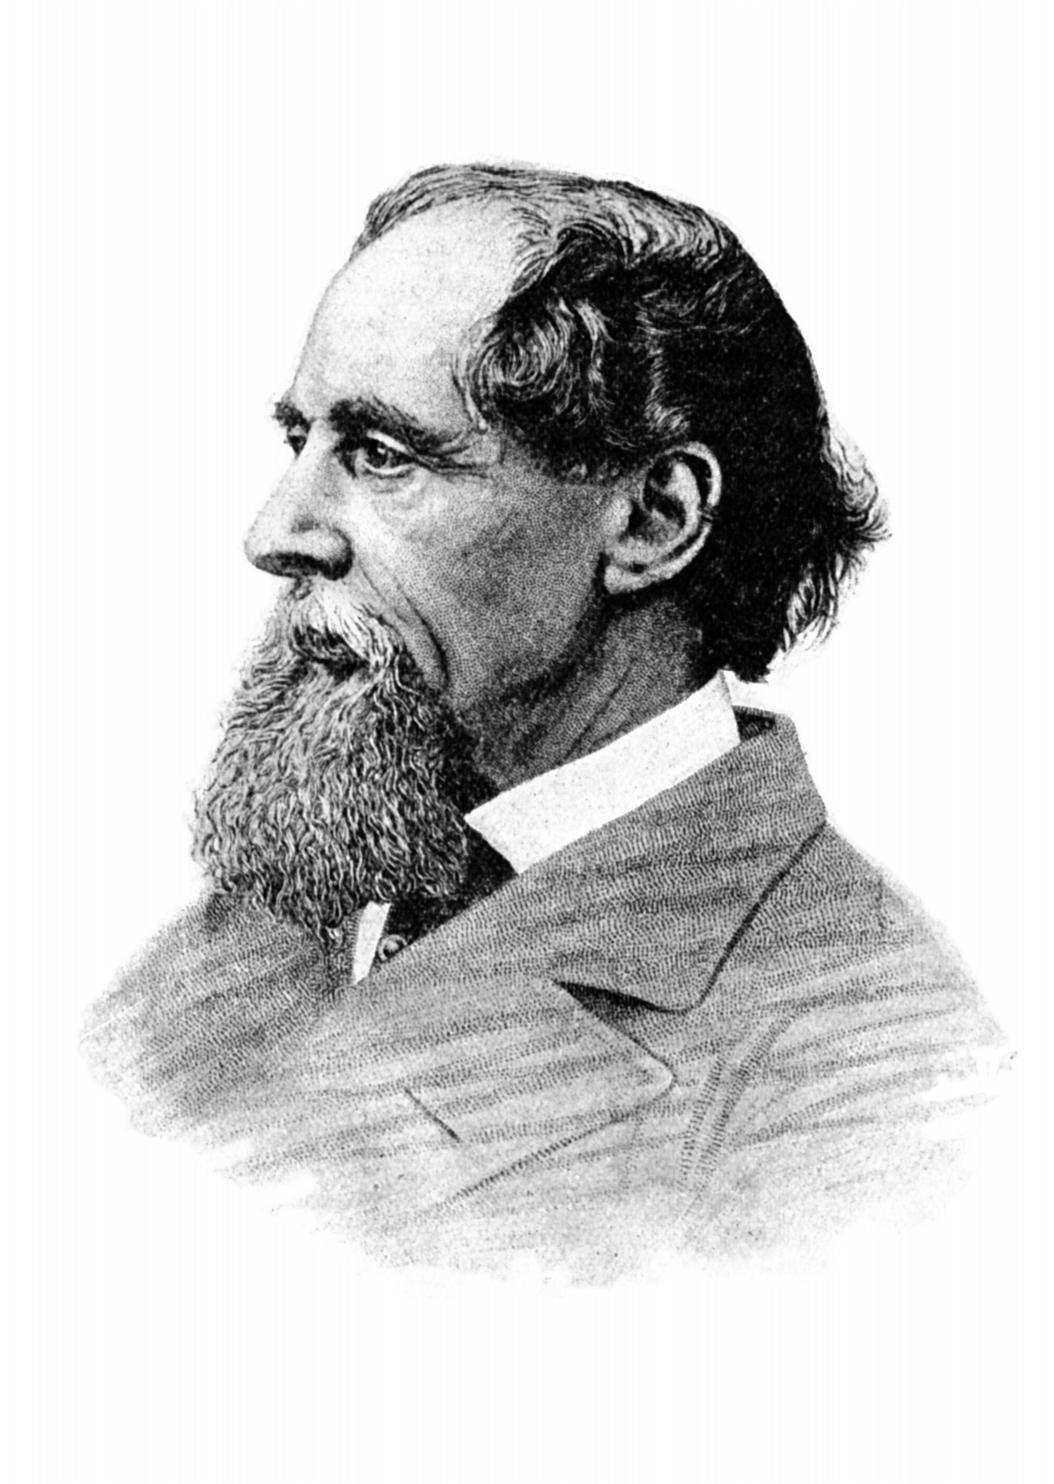 The tale of Charles Dickens